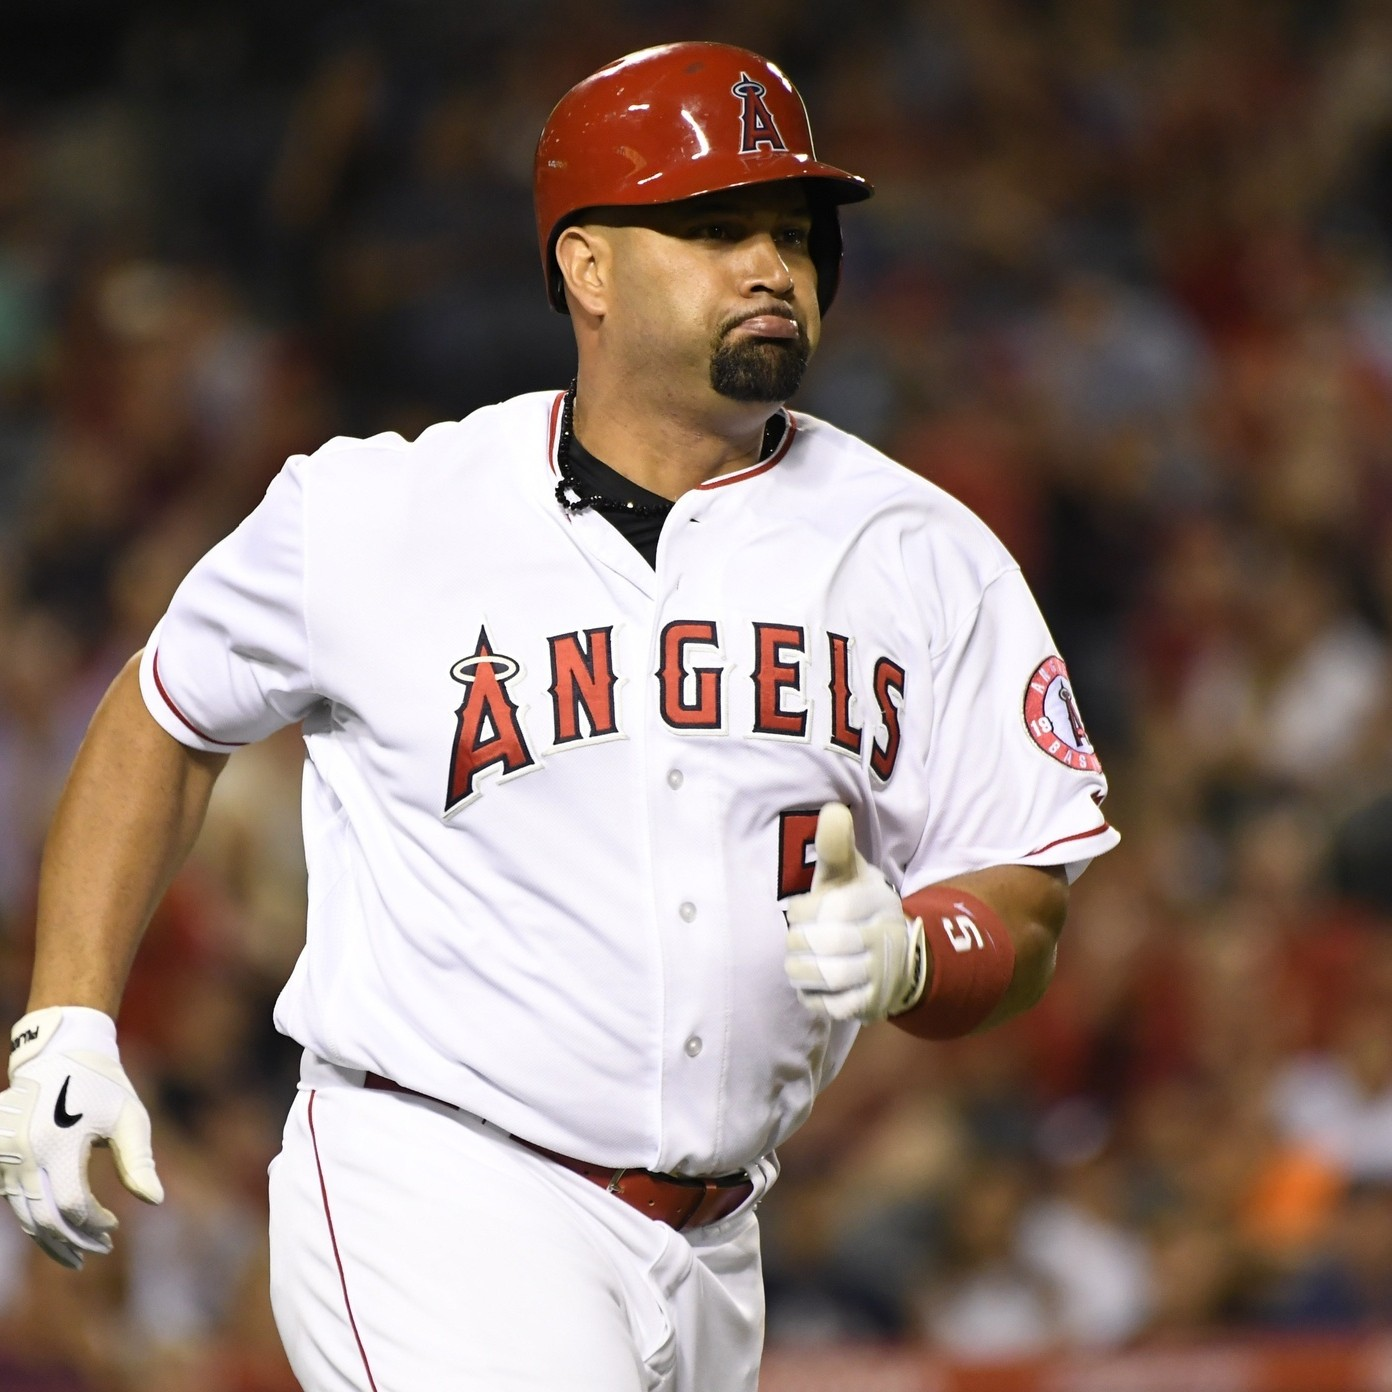 Watching-the-los-angeles-angels-of-anaheim-a-team-in-baseball-purgatory-1470689992.jpg?crop=0